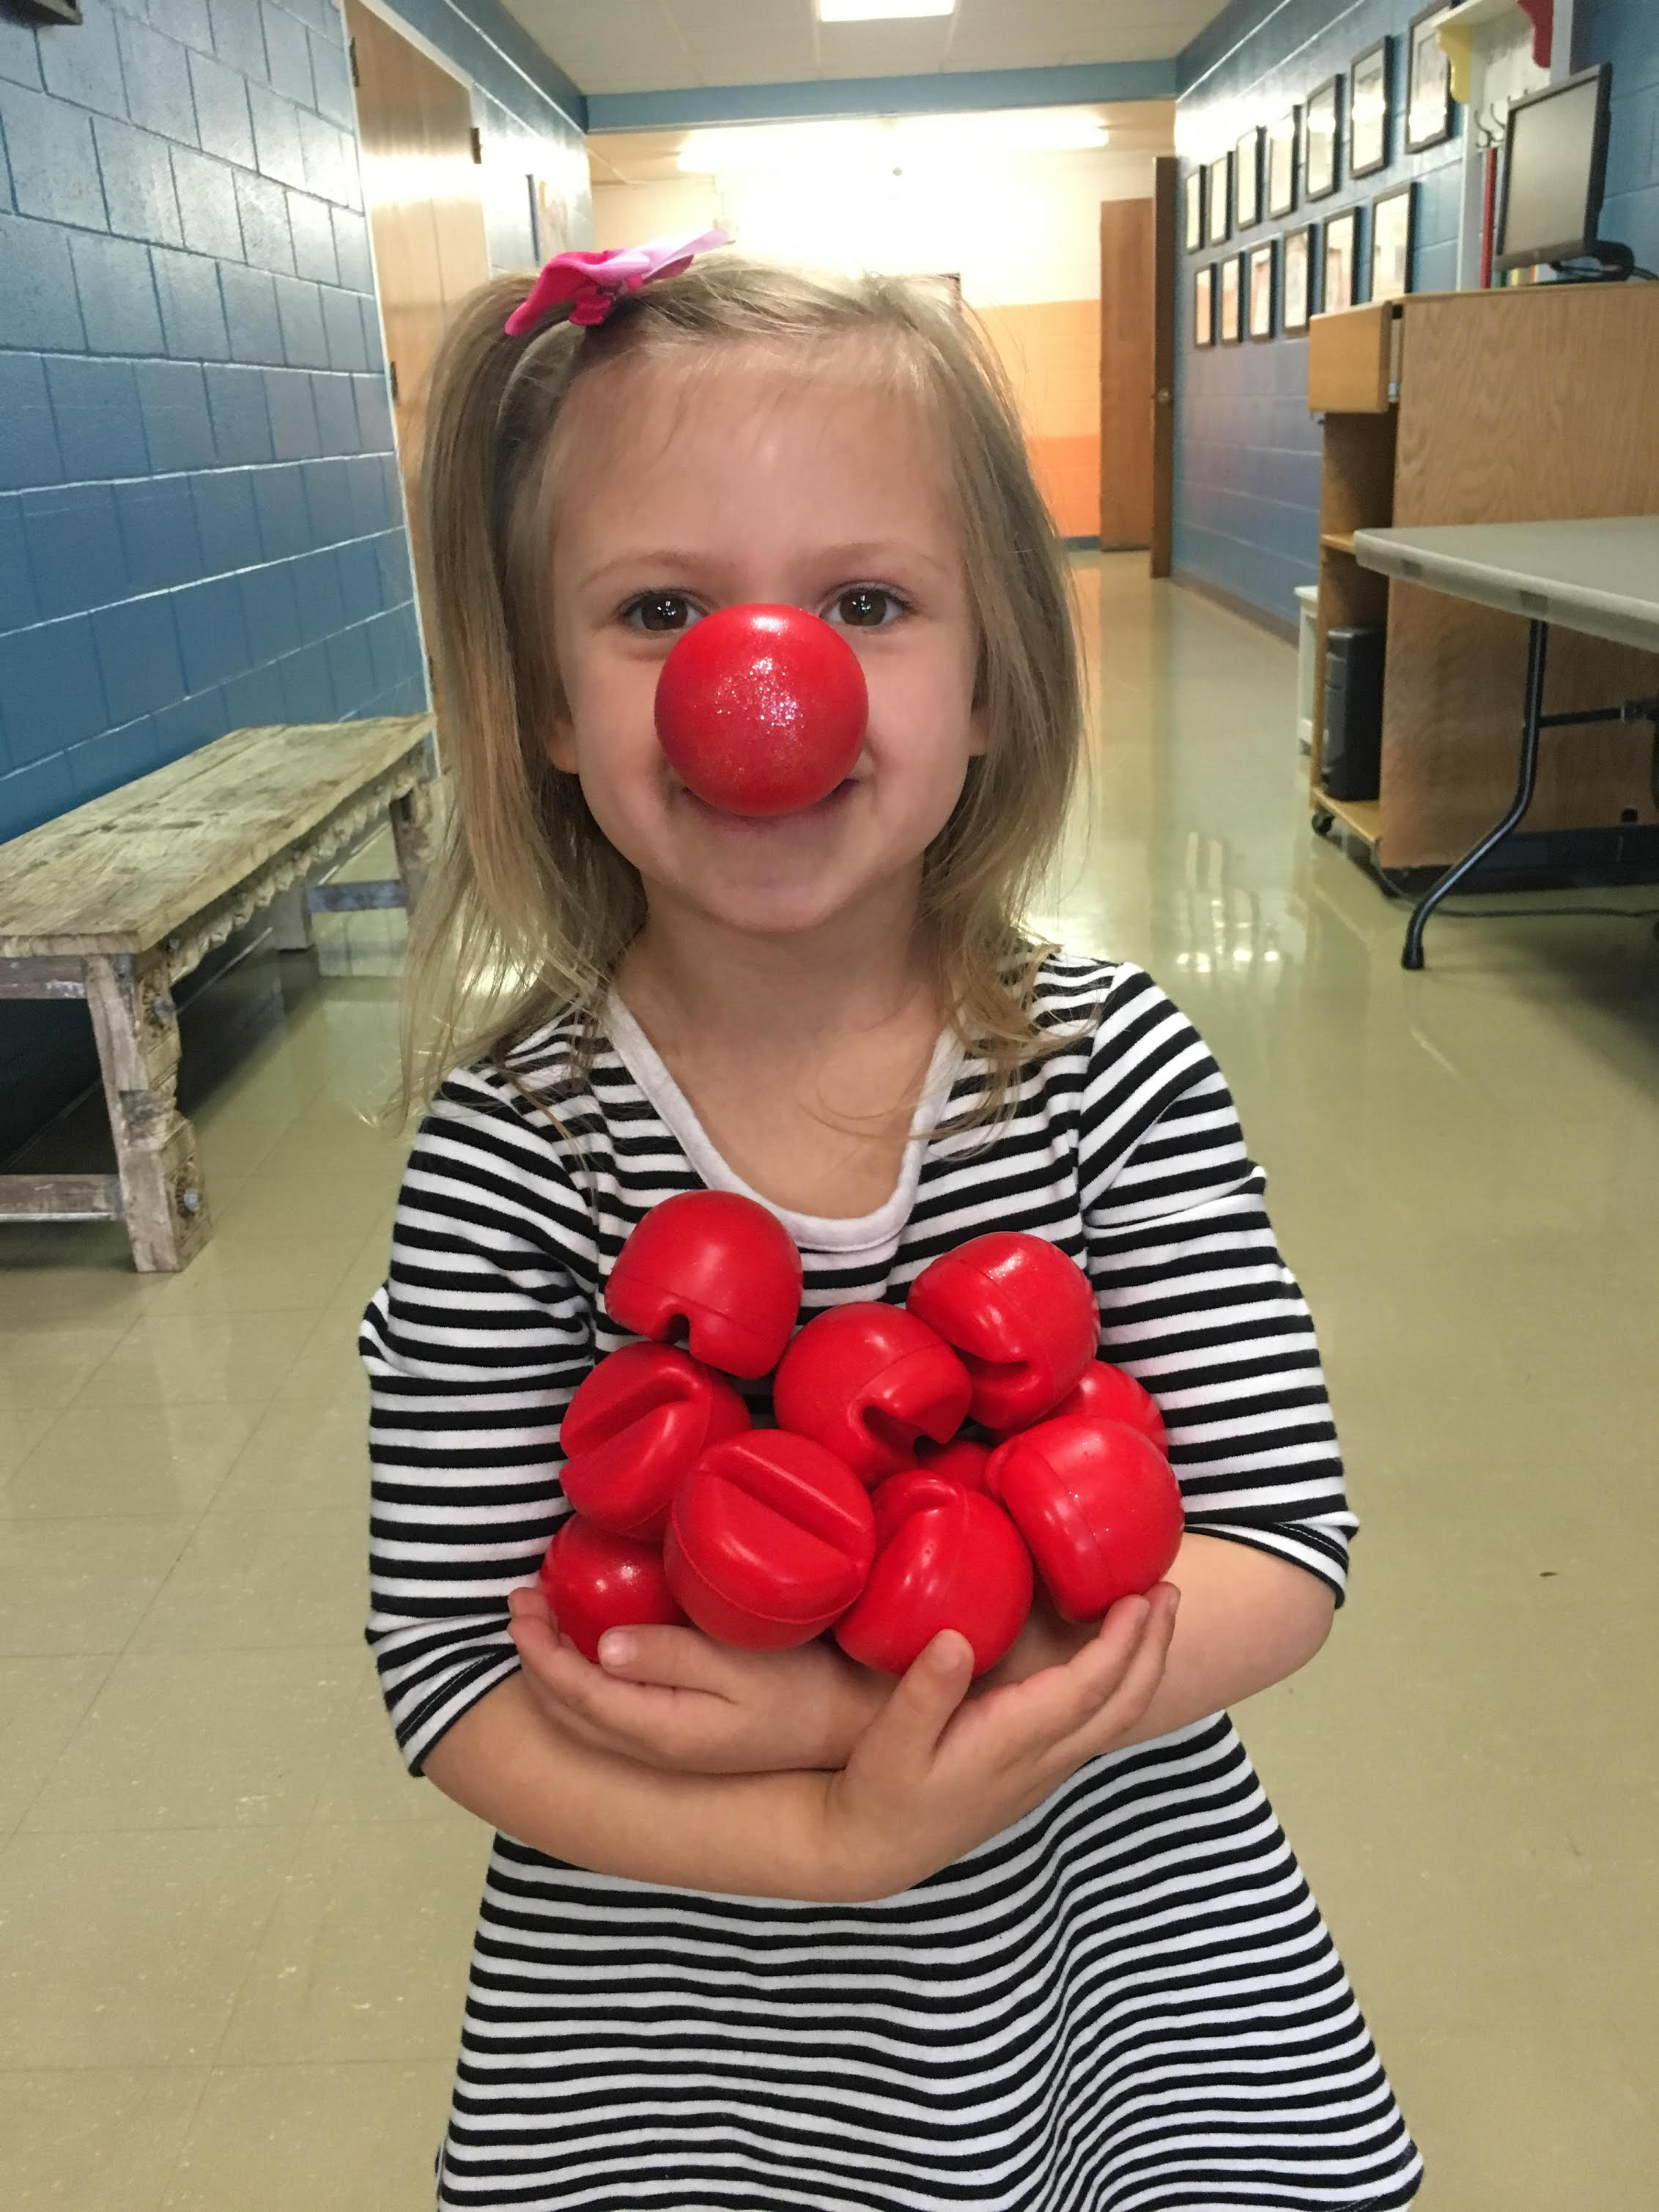 Bring Red Noses for your whole class.